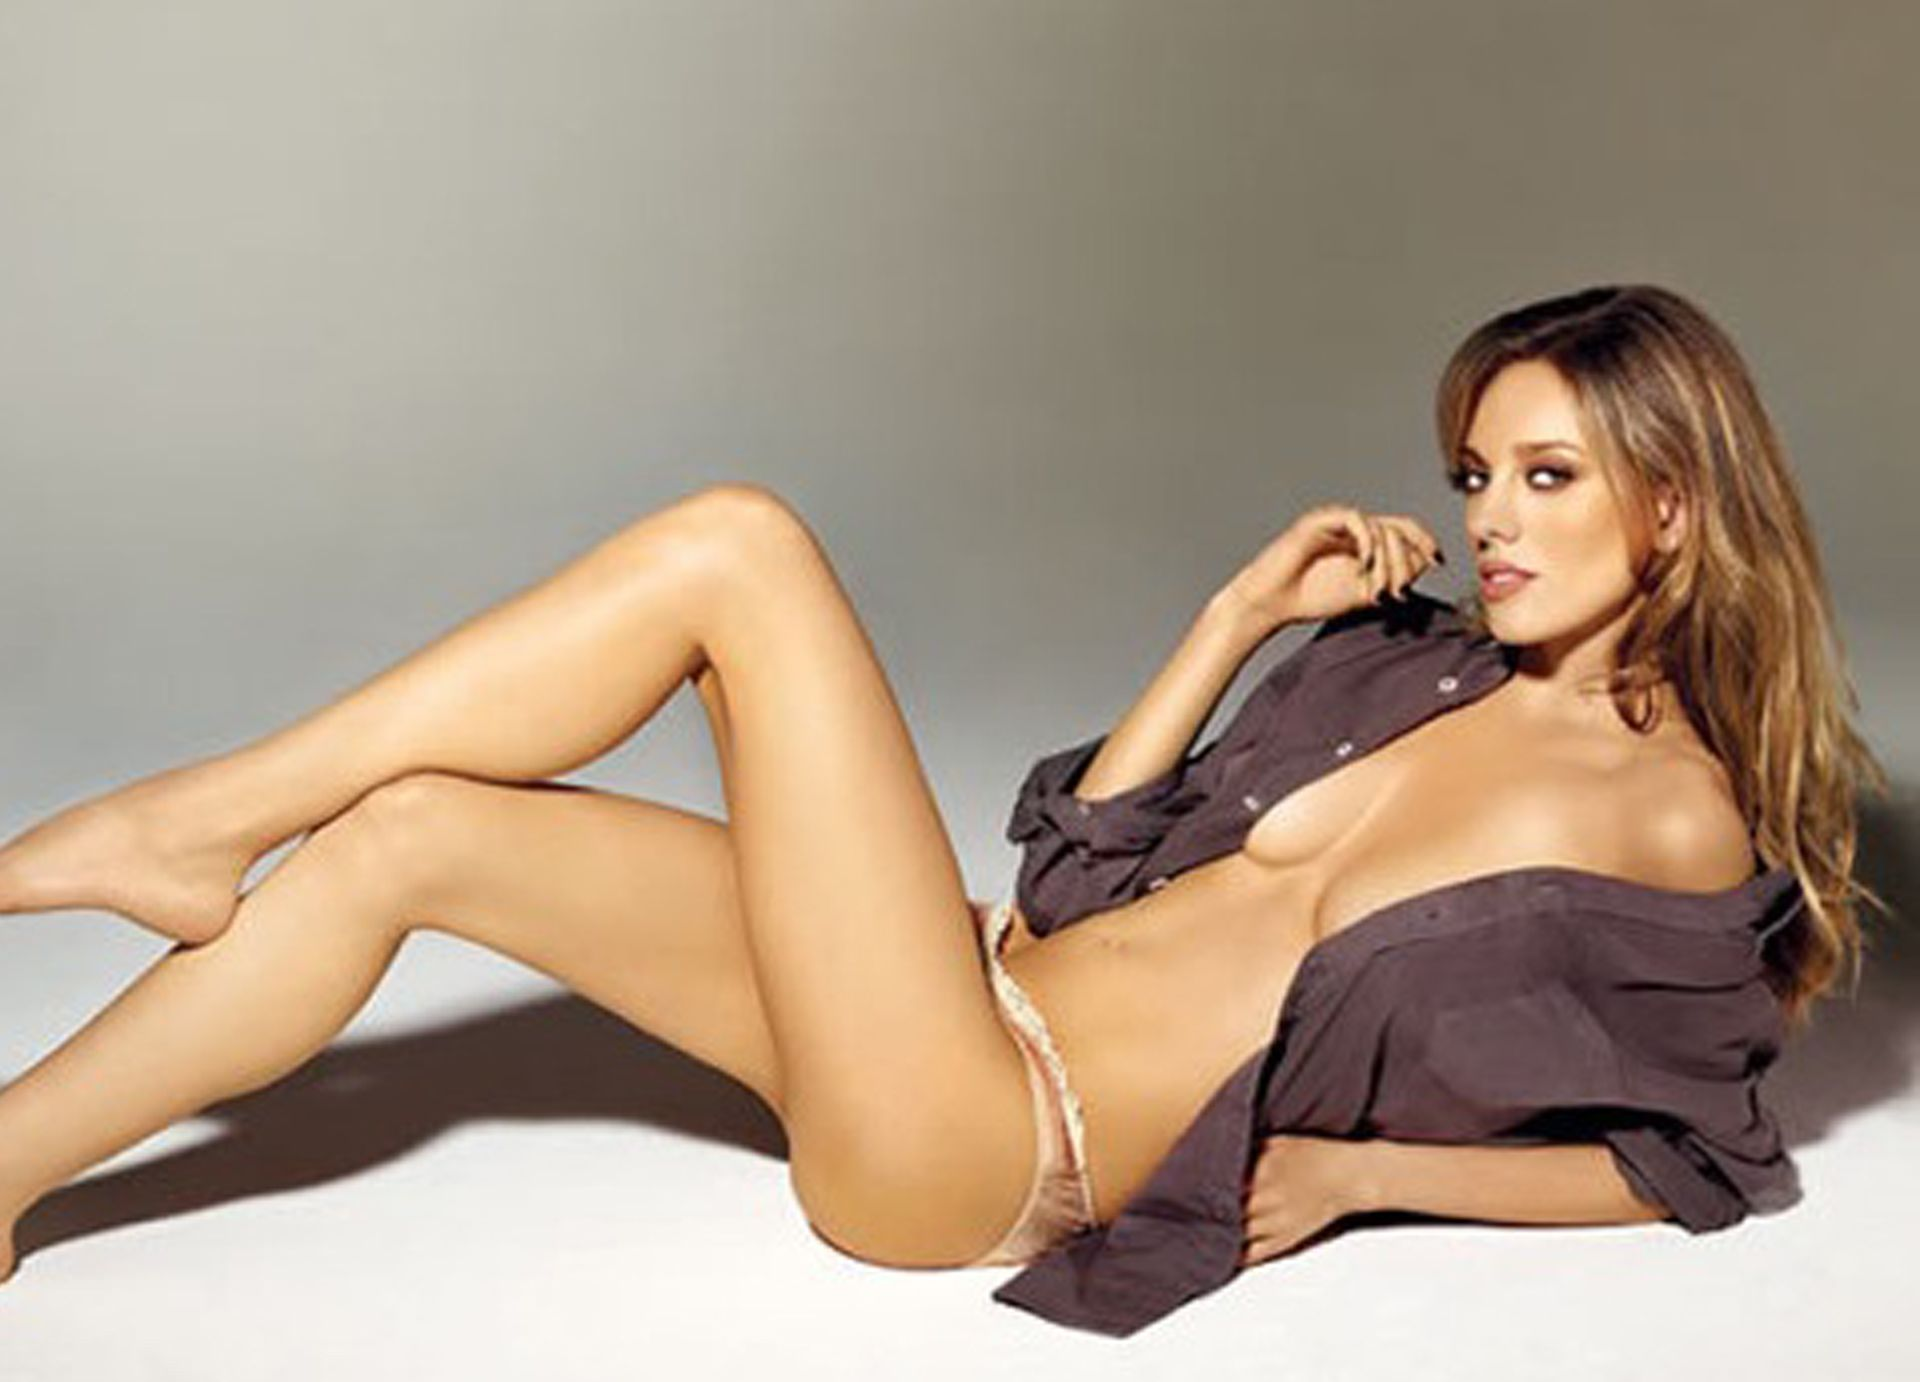 Bar paly hot nudes (84 photo), Topless Celebrity pics